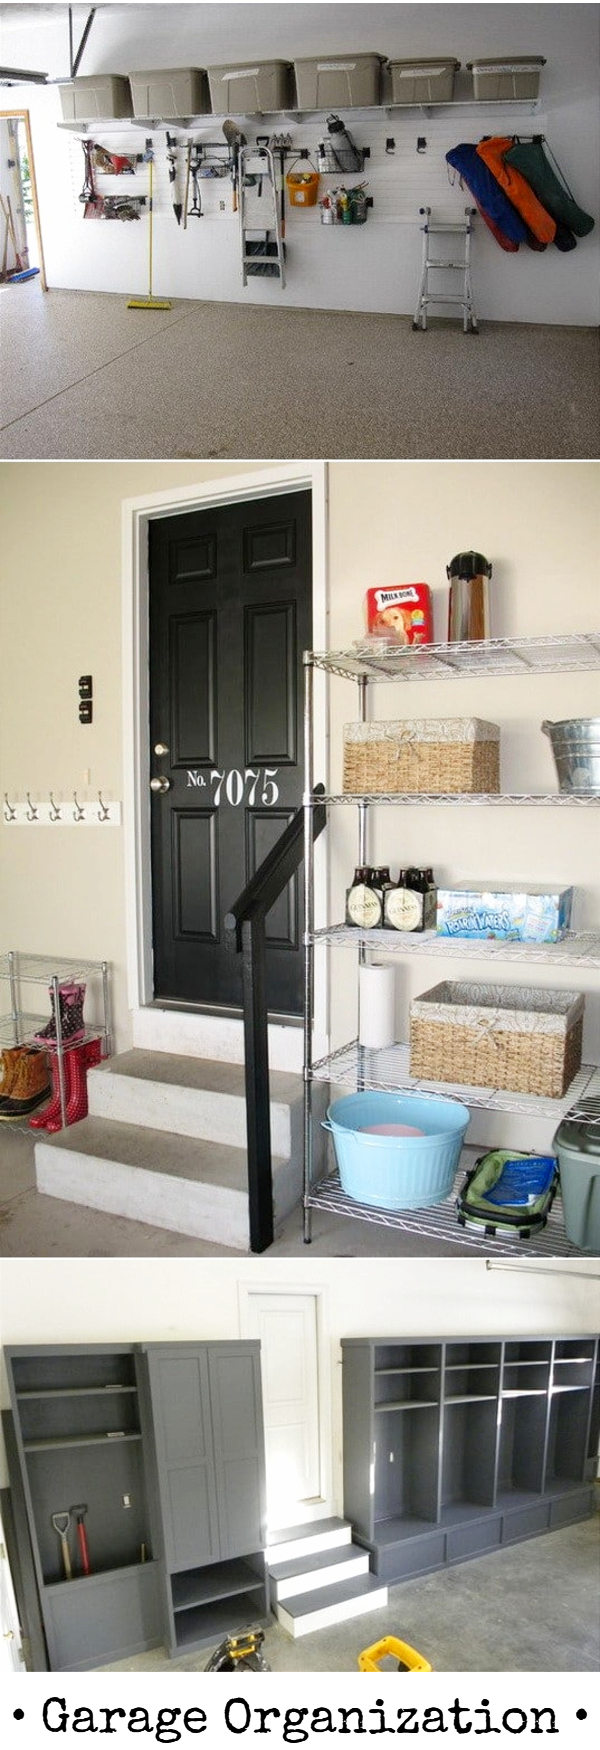 Garage Organization And Storage Ideas   Organize Your Garage Clutter With  These 5 Quick And Cheap